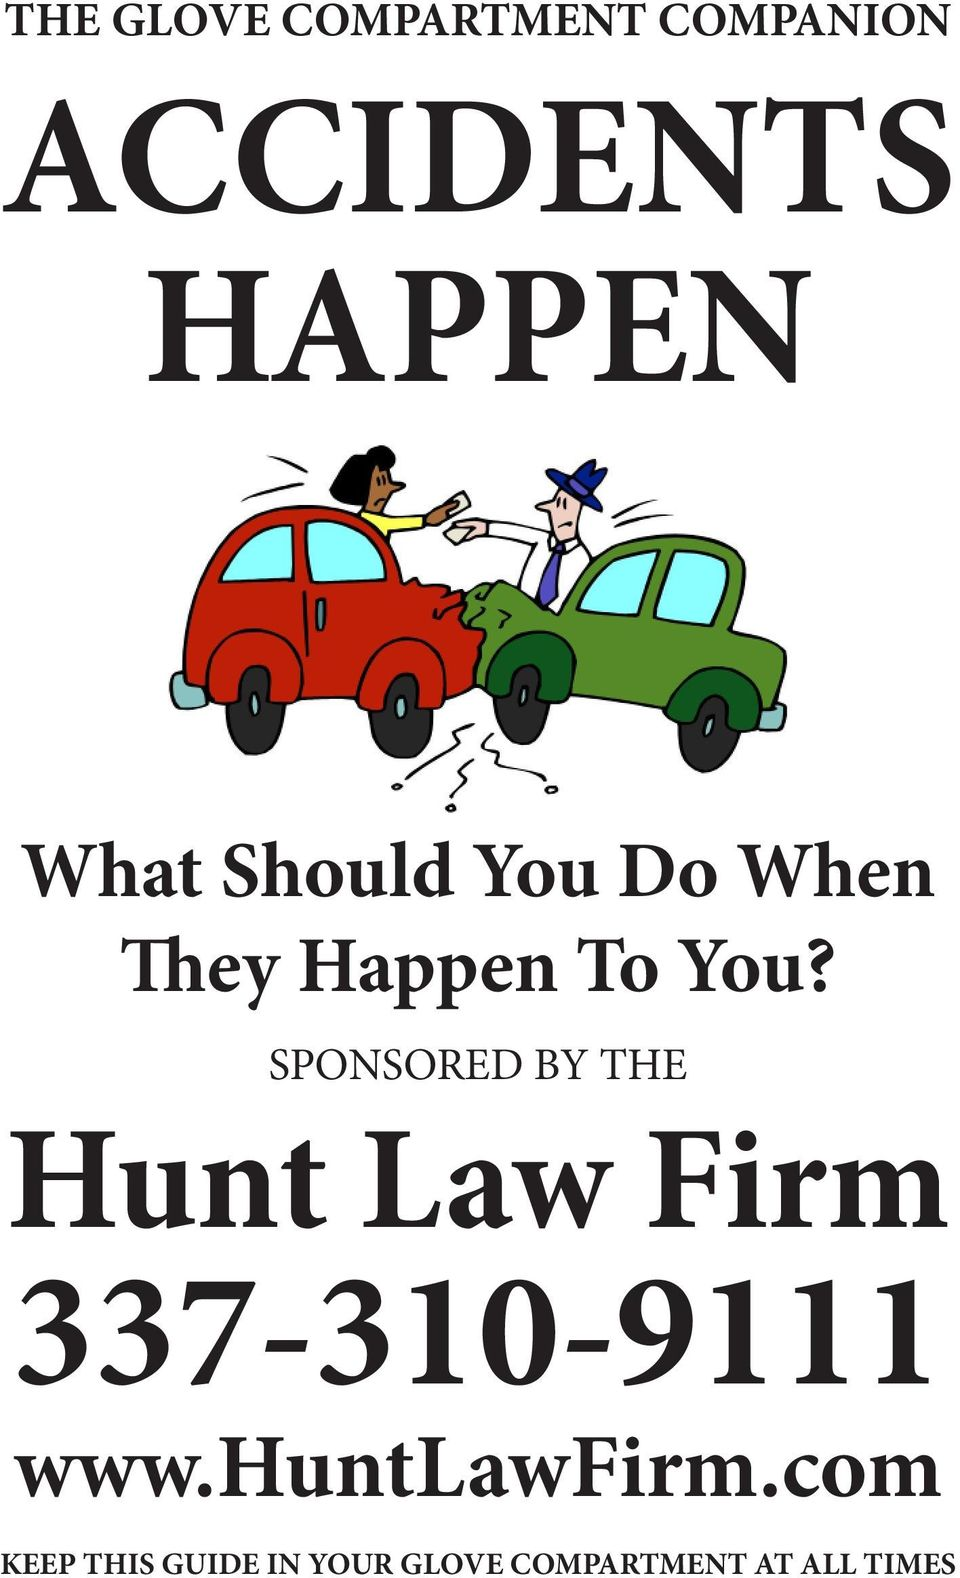 SPONSORED BY THE Hunt Law Firm 337-310-9111 www.